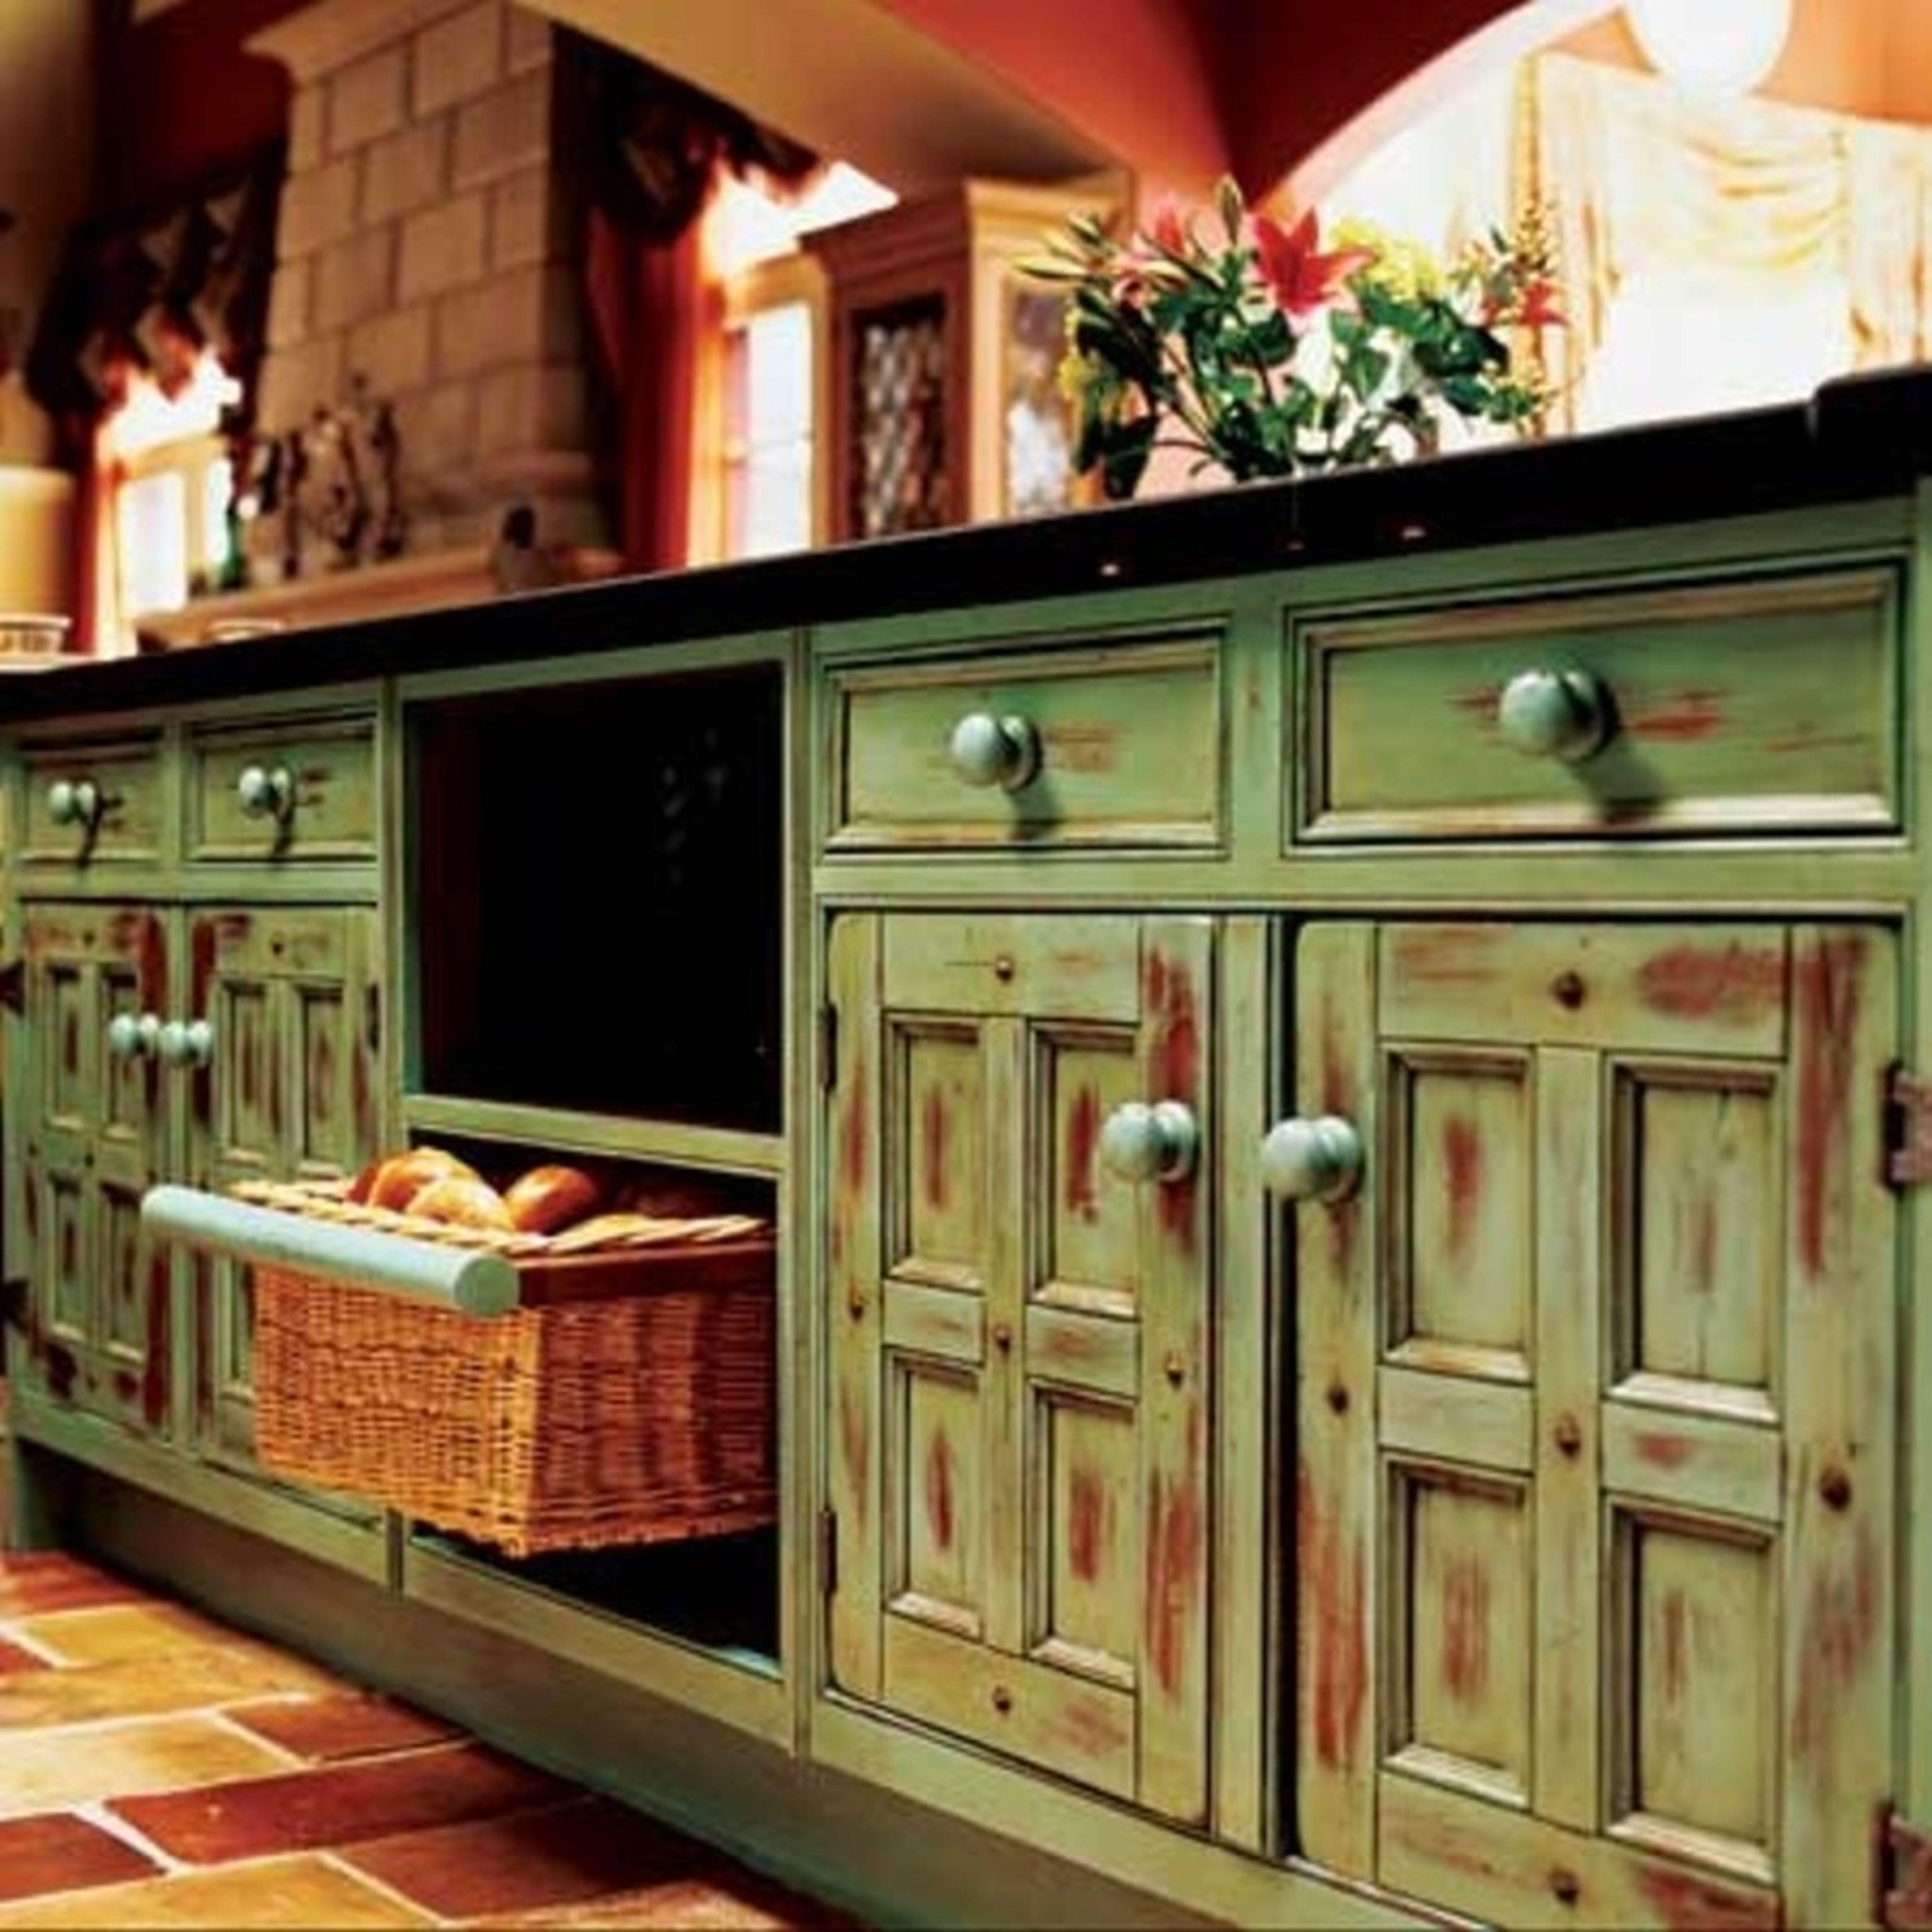 Wooden Countertops Also Green Kitchen Wall Painted In Country Kitchen Furniture Painted Distressed Kitchen Cabinets Distressed Kitchen Rustic Kitchen Cabinets